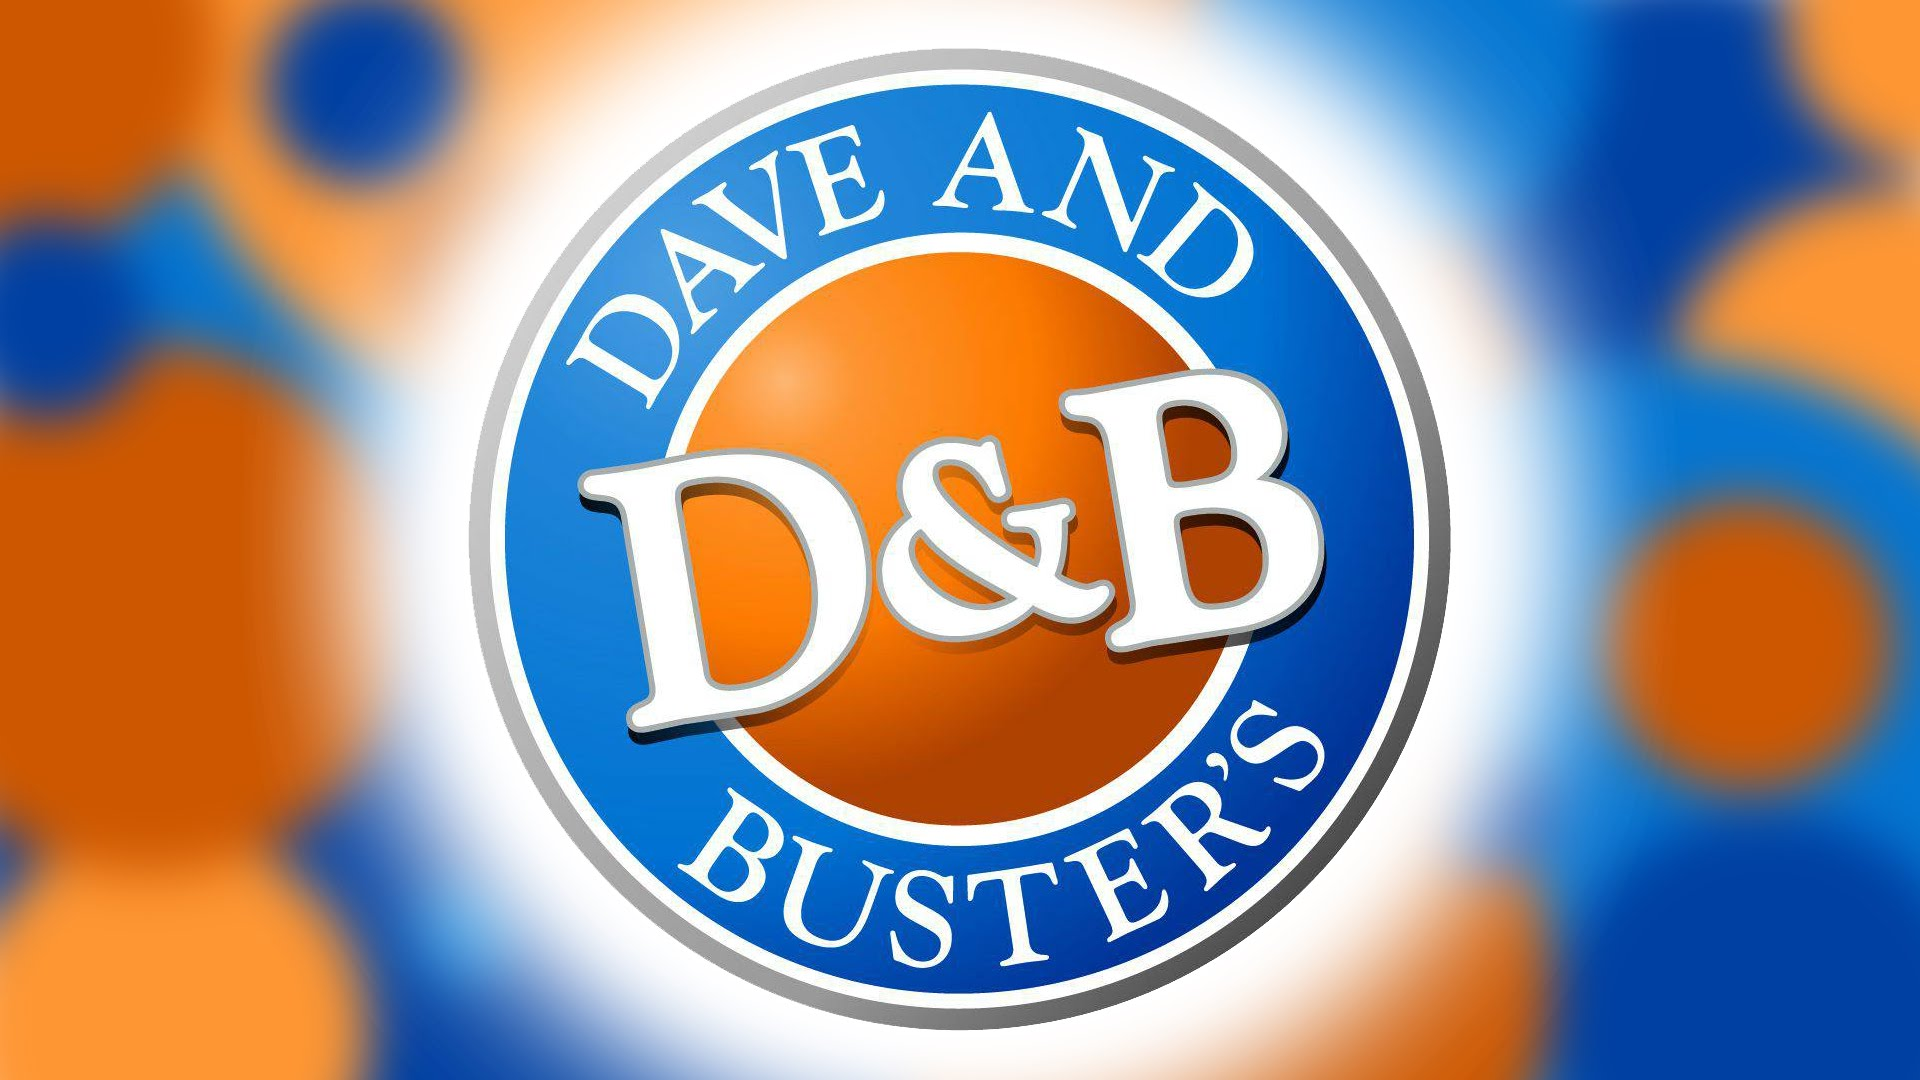 Get a free $10 game play Power Card when you join the Dave and Busters rewards program.